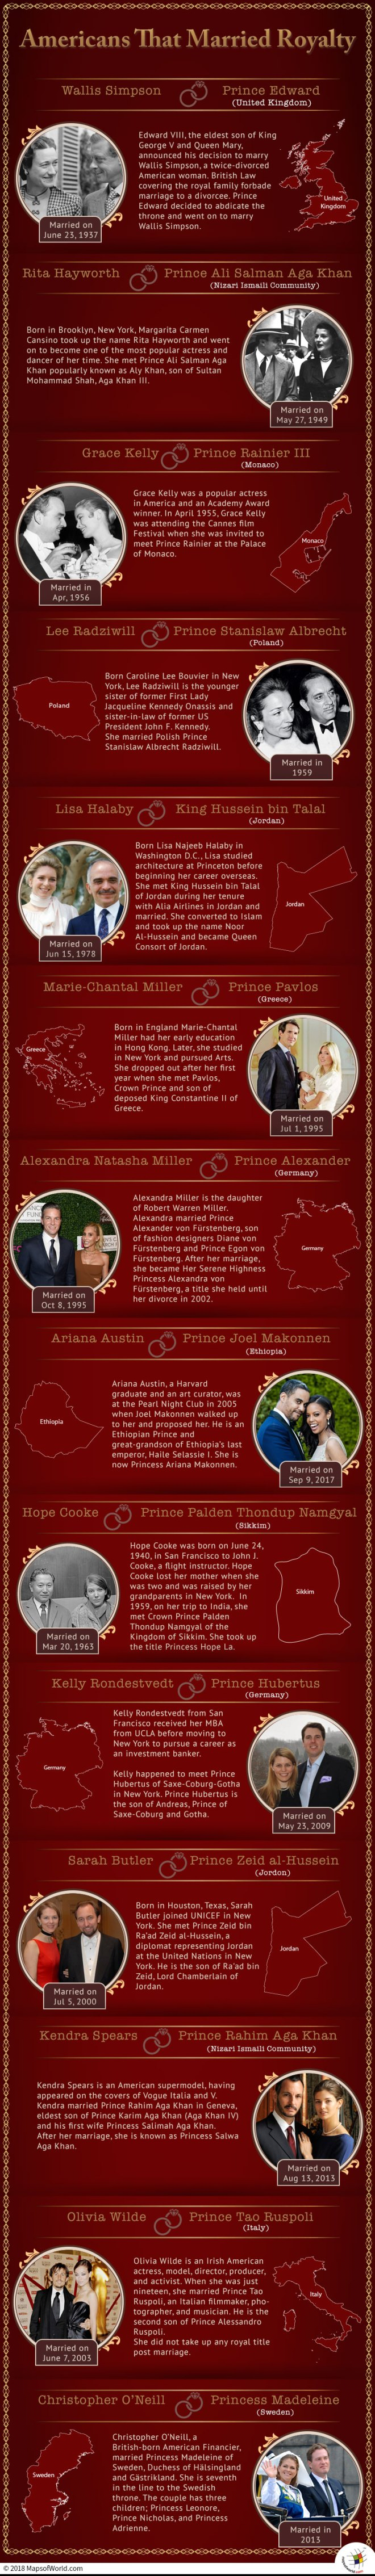 Infographic - Americans that married royalty